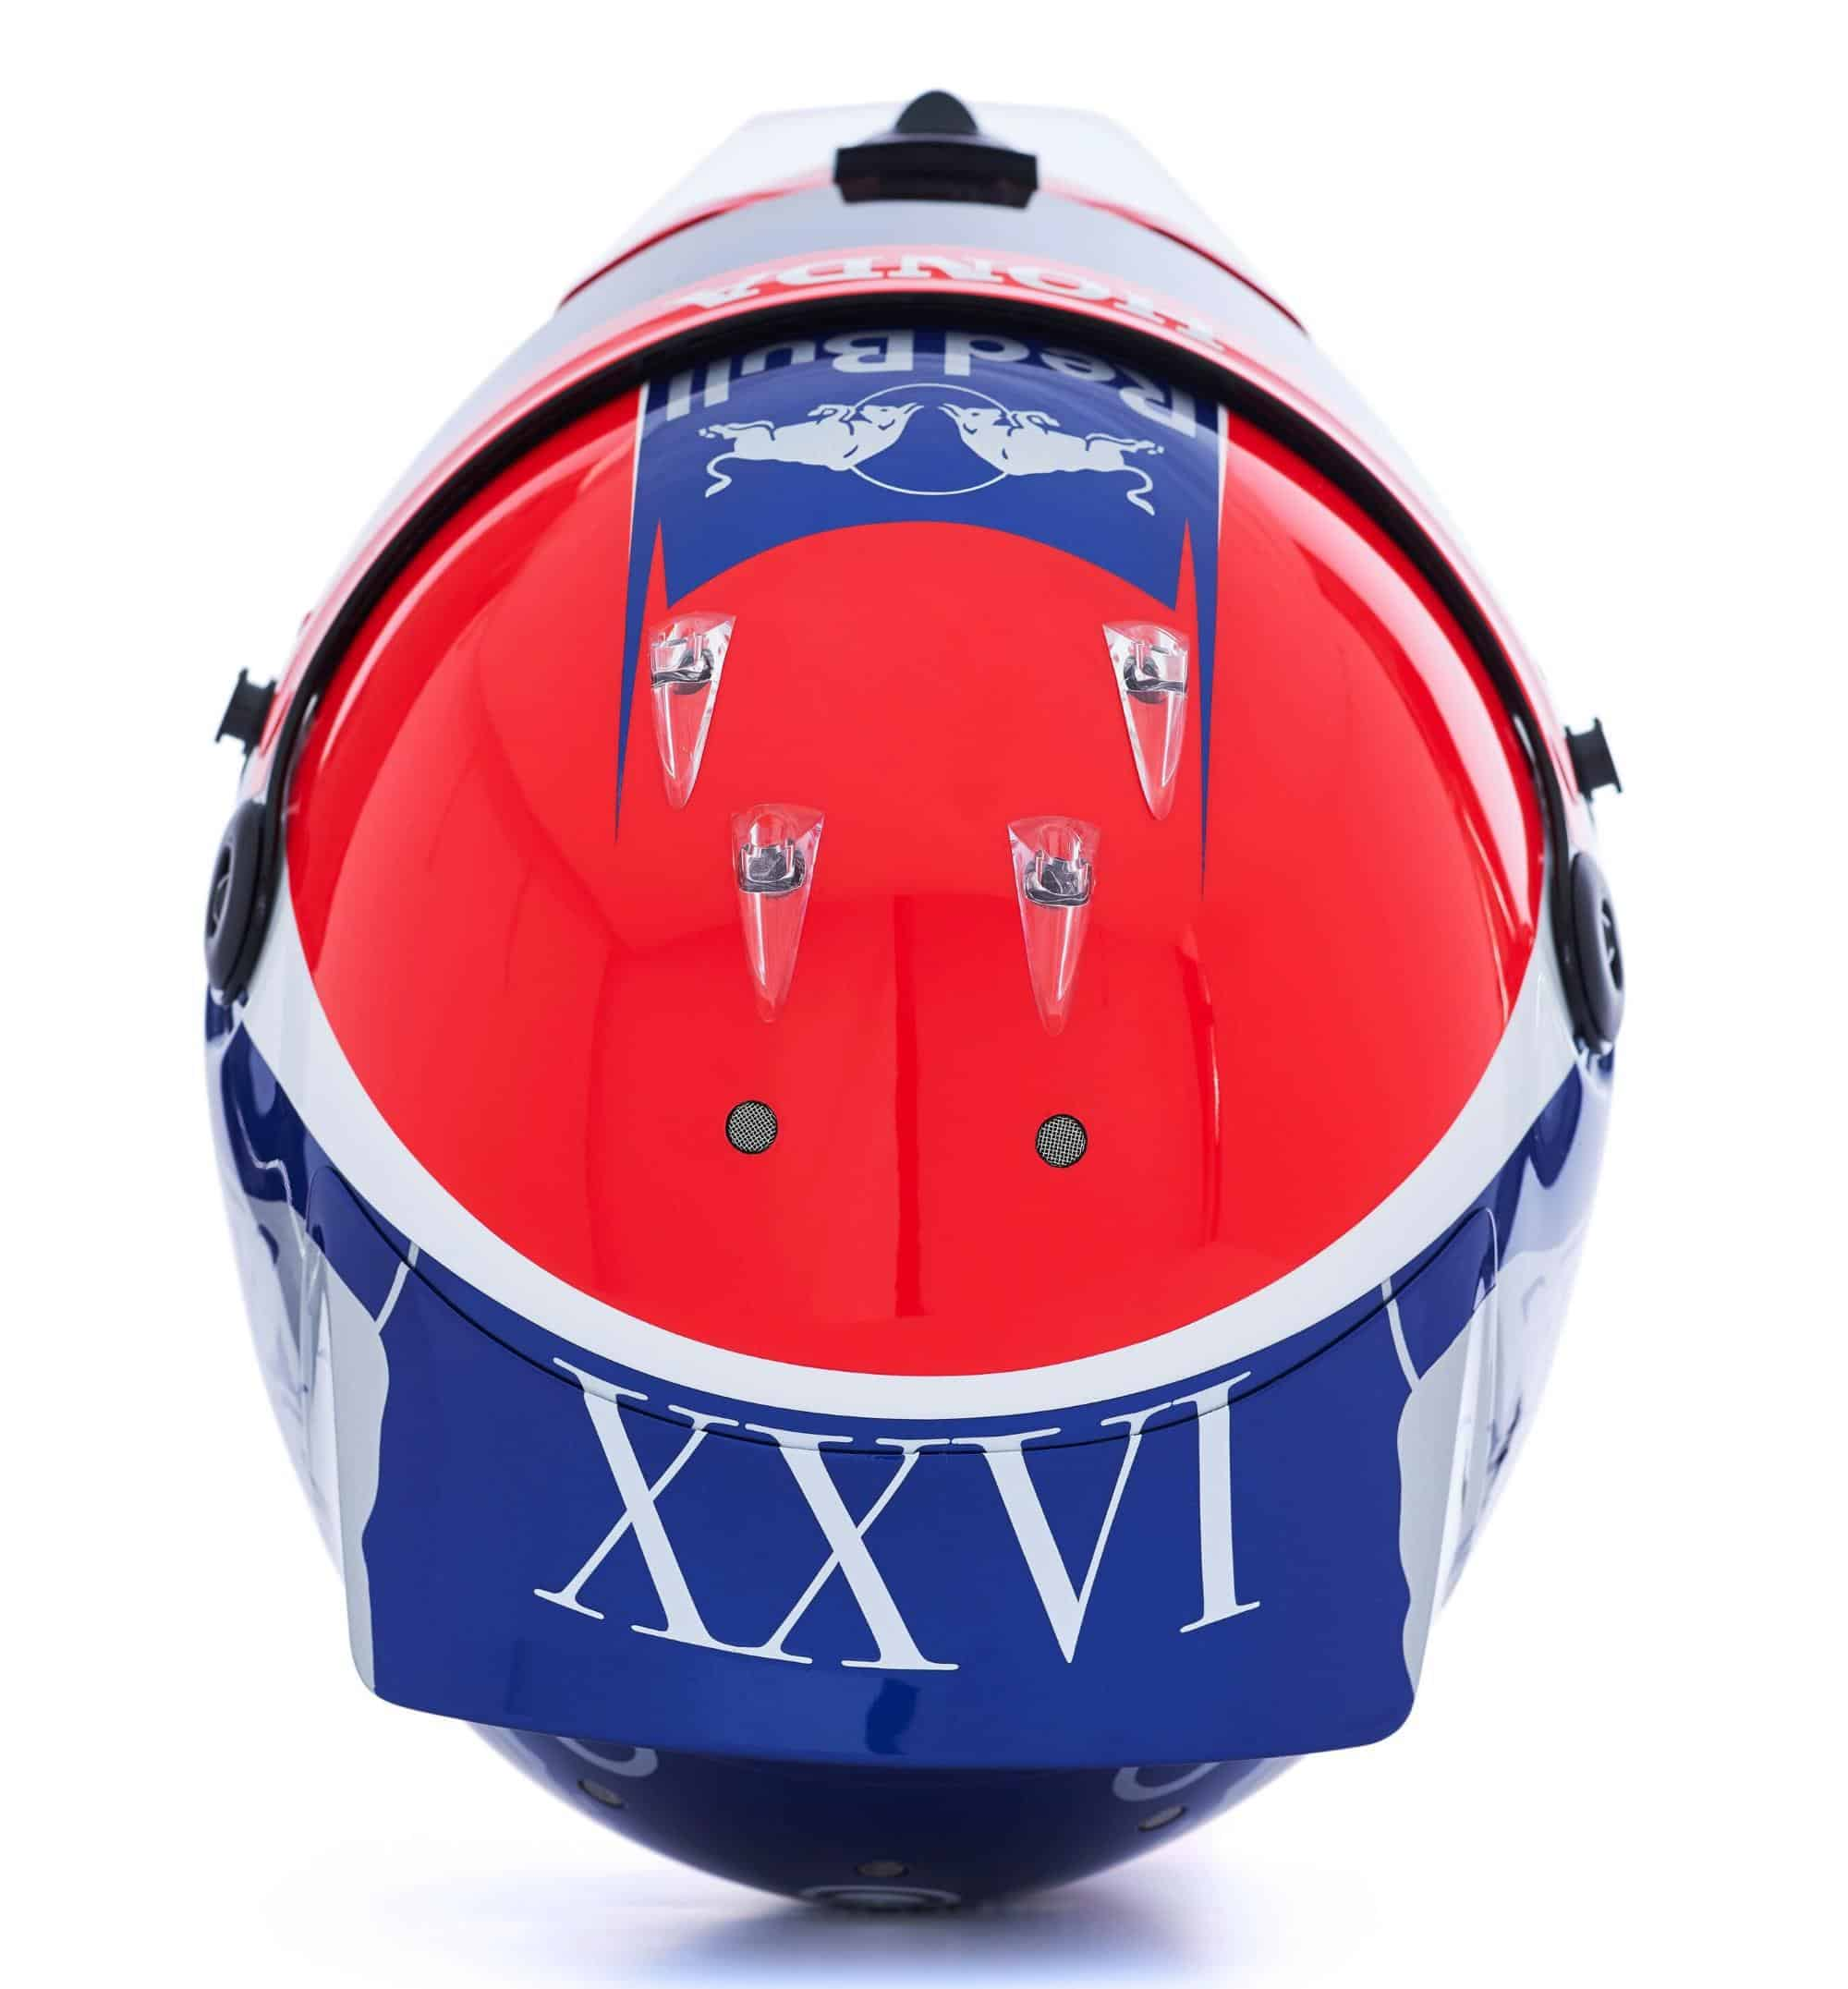 2019 F1 Daniil Kvyat helmet Toro Rosso Honda top Photo Red Bull Edited by MAXF1net